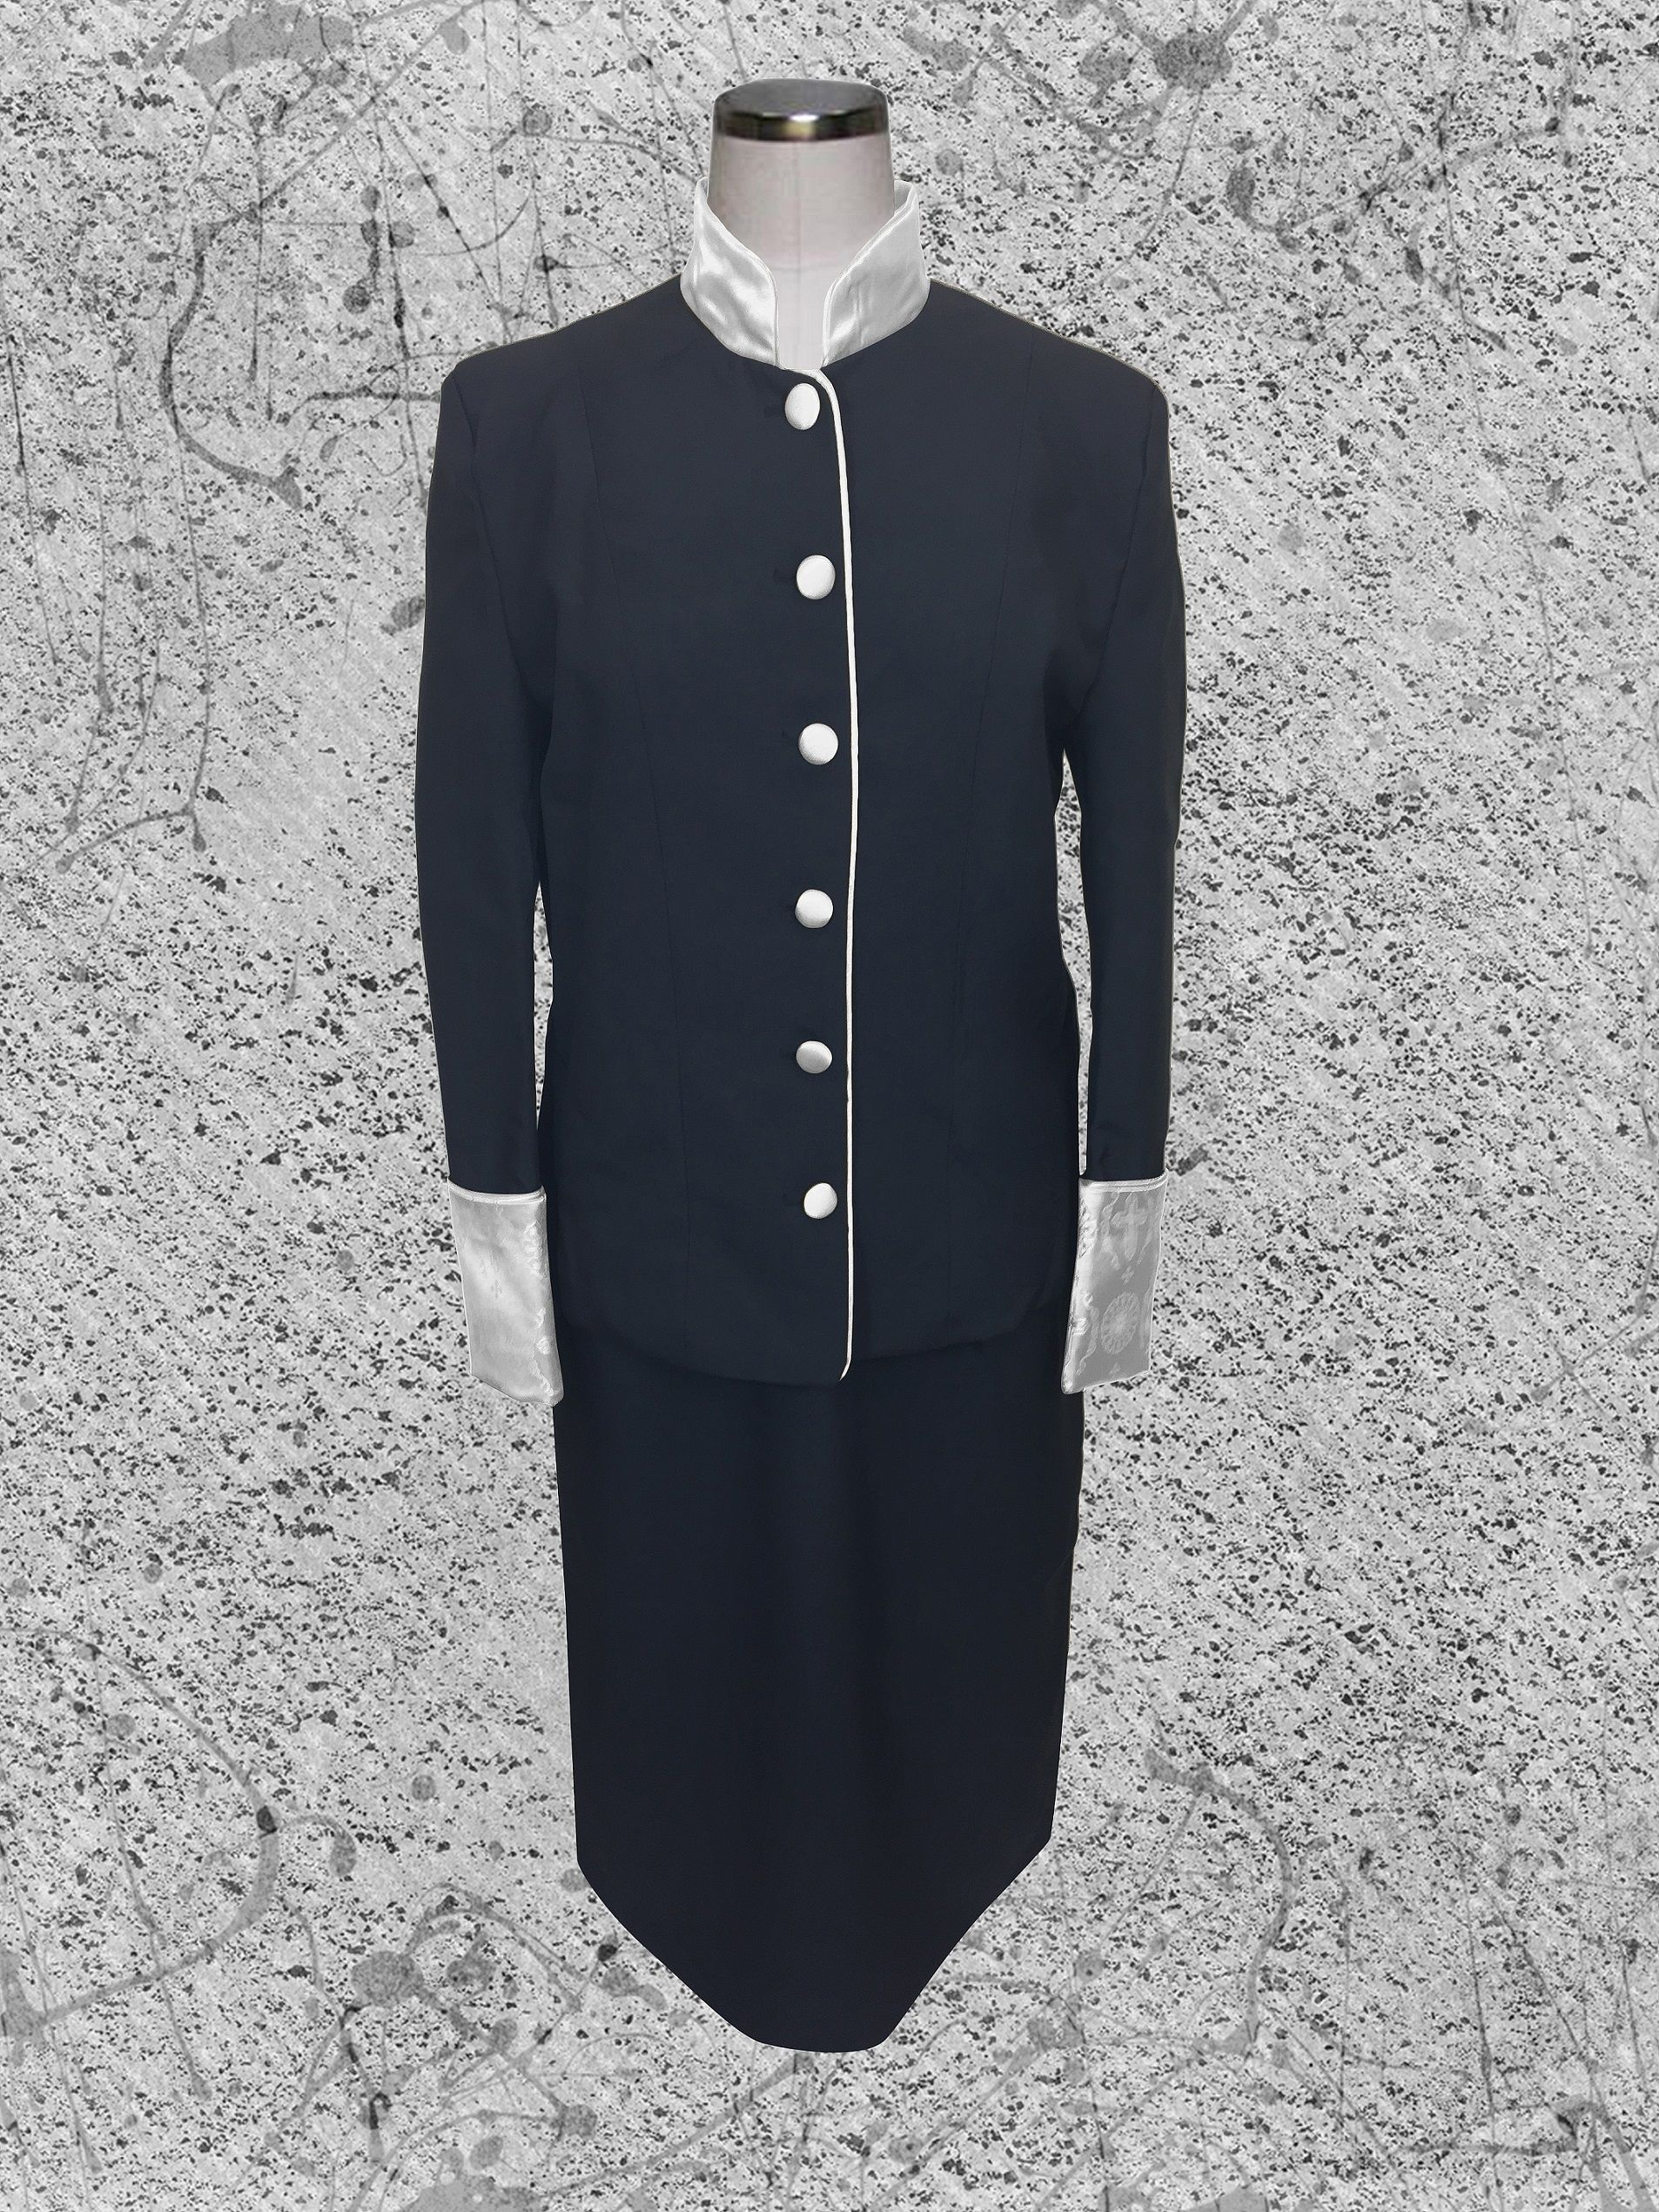 Black and White Clergy Suit for Women